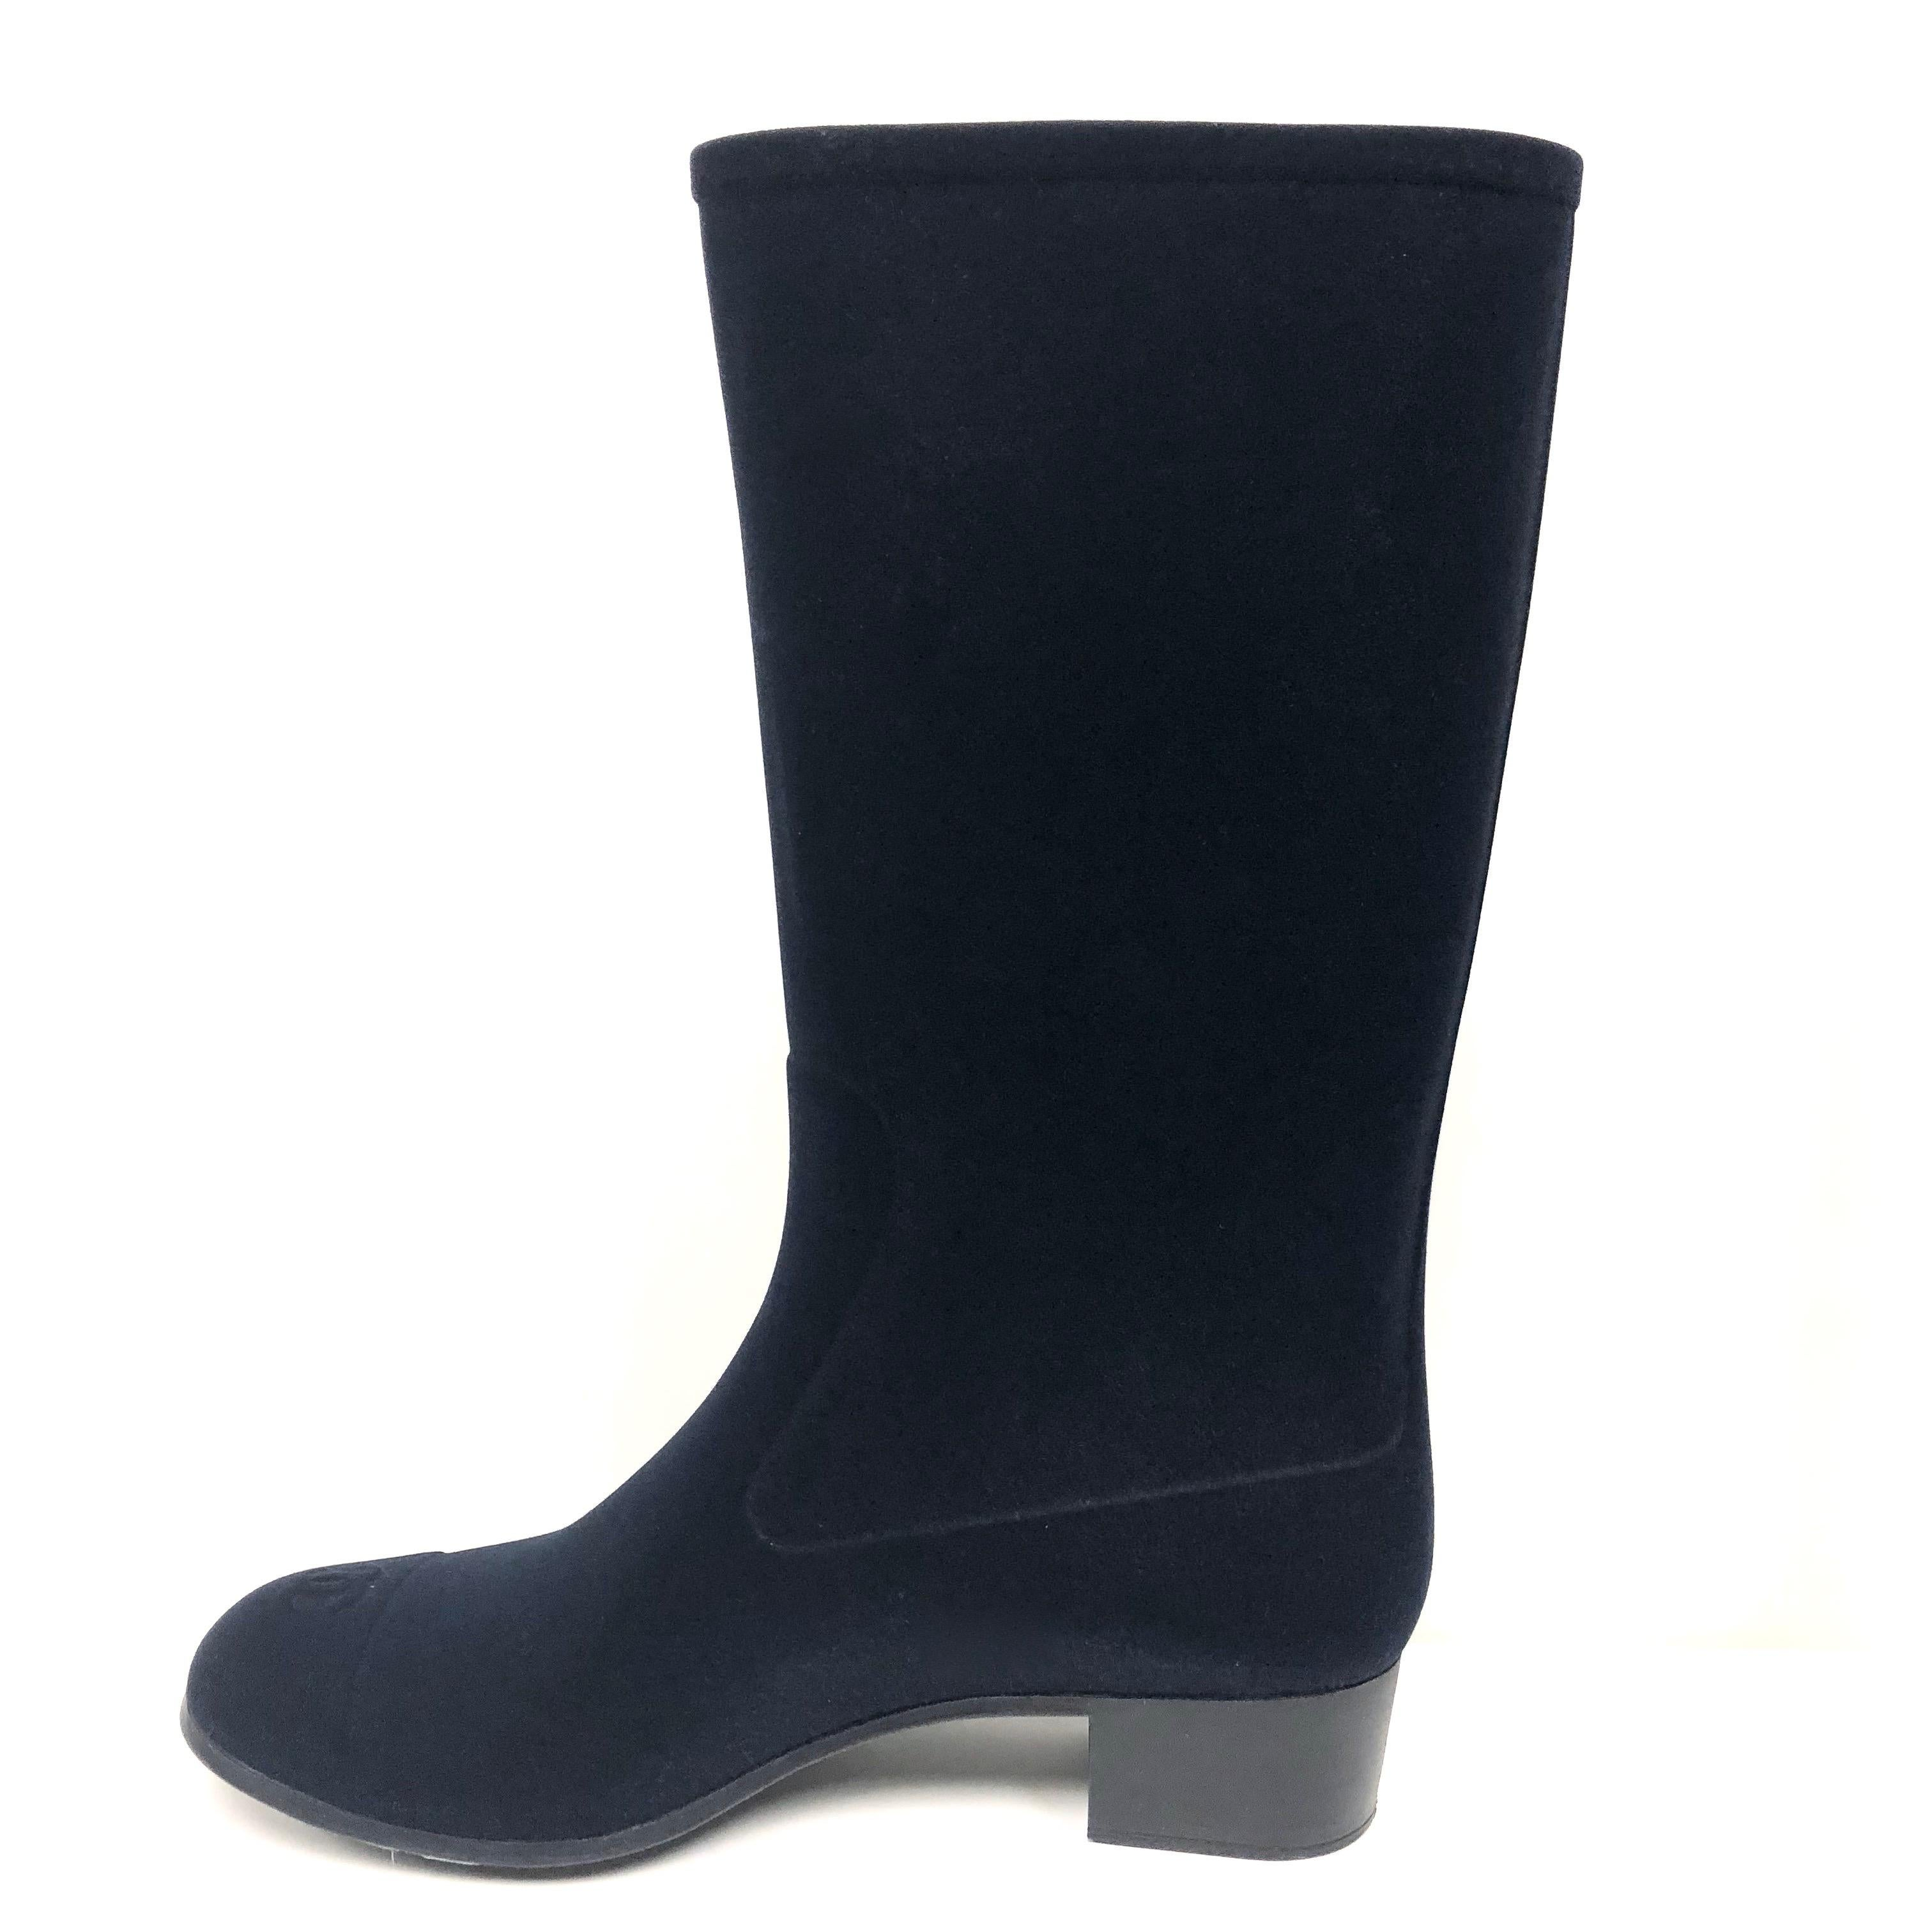 5a4e9ca10 Chanel Rain Boots with Camellias Size 38 For Sale at 1stdibs